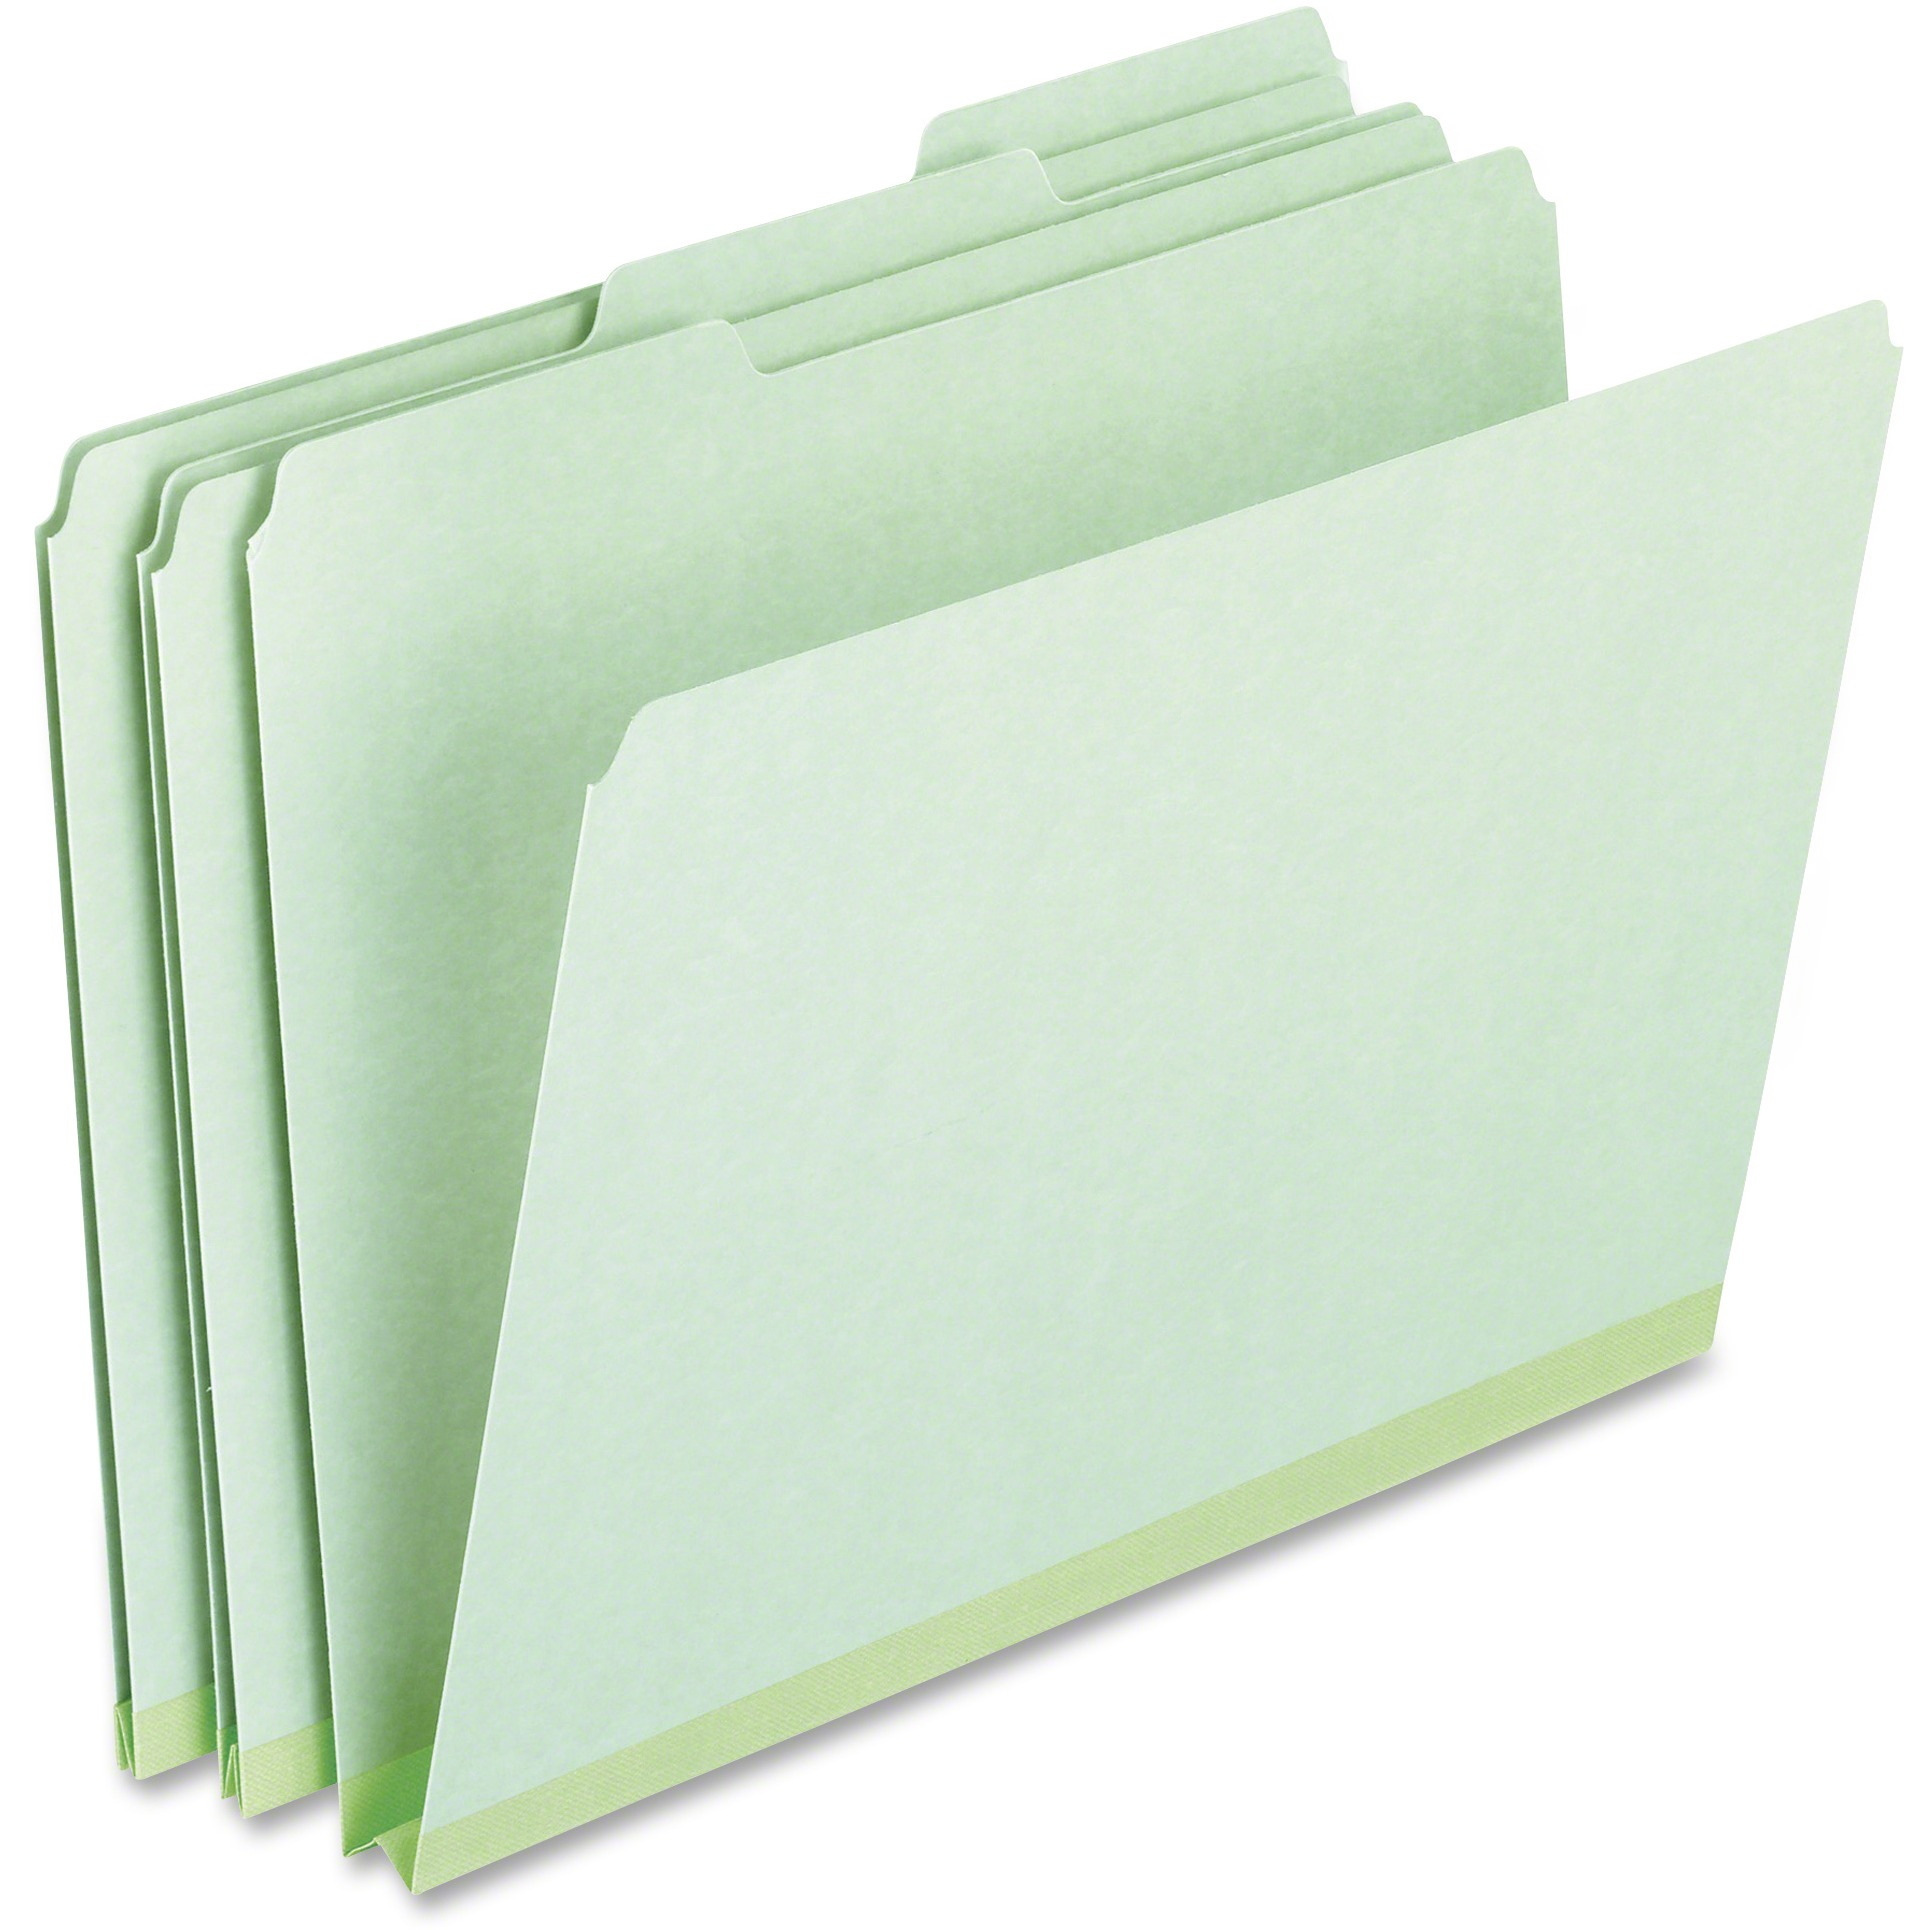 Pressboard Expanding File Folders, 1/3 Cut Top Tab, Letter, Green, 25/Box